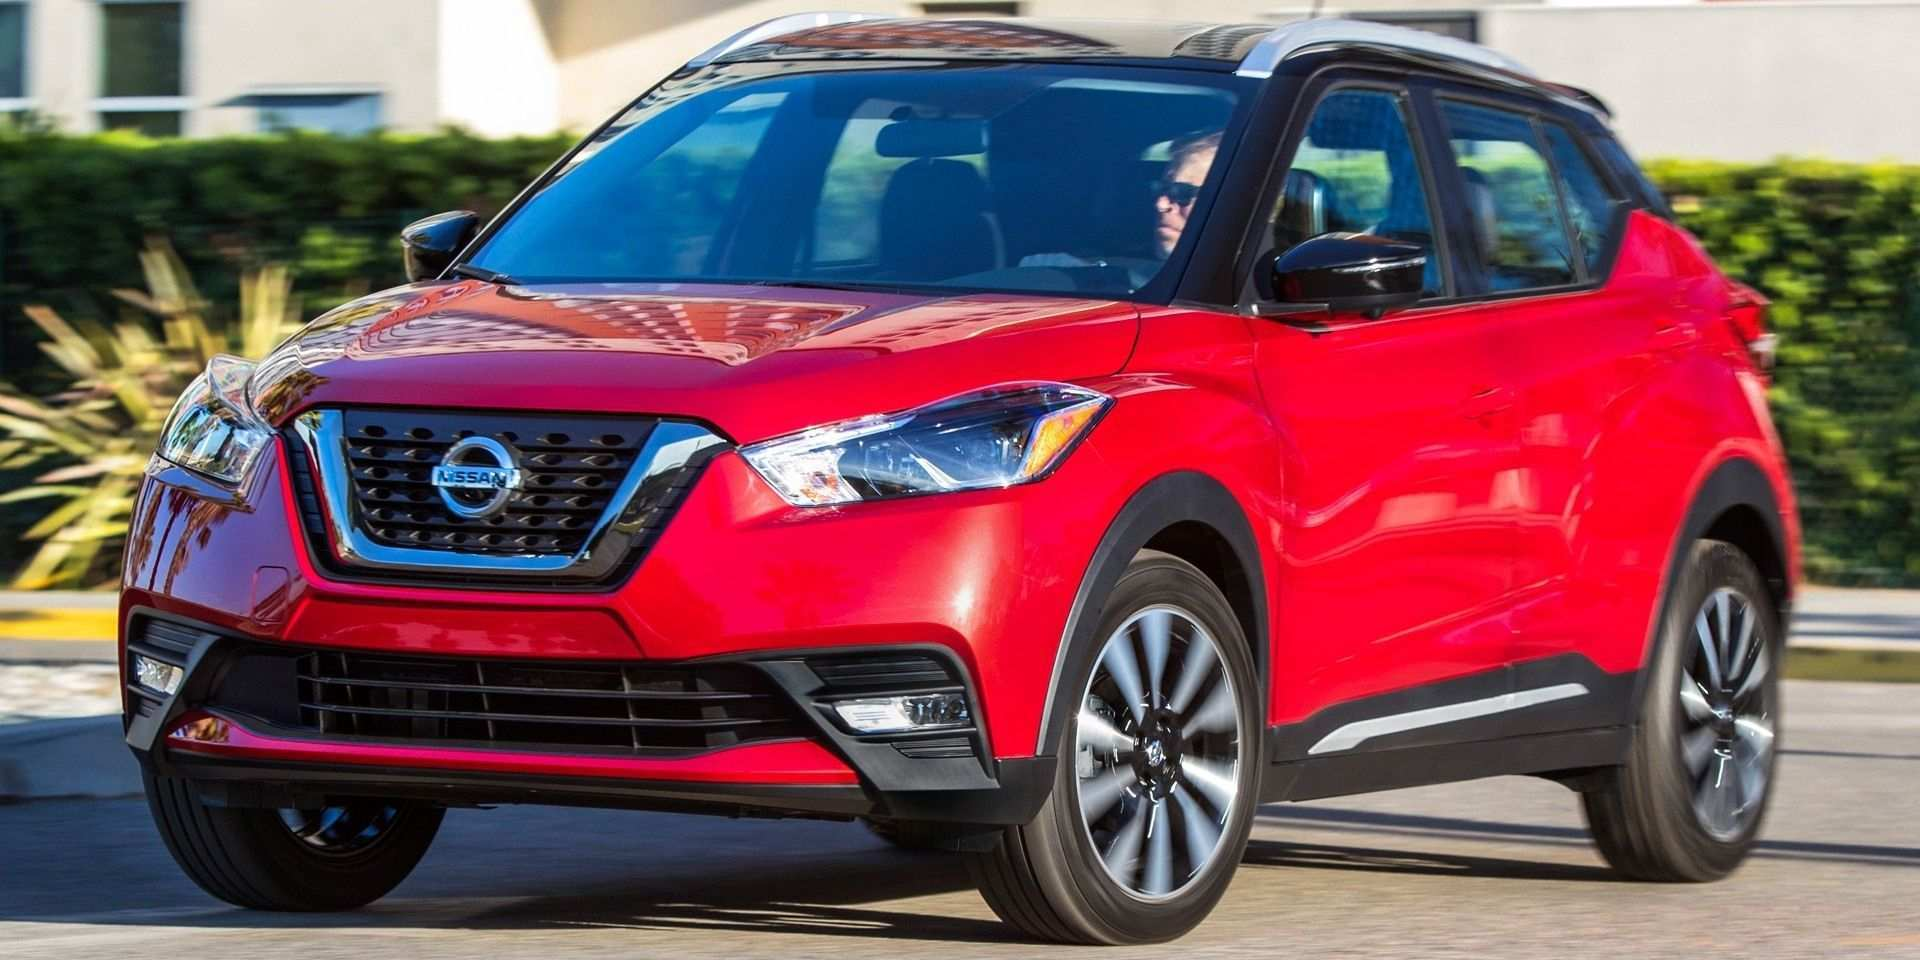 84 Gallery of Nissan Kicks 2019 Preco Specs And Review Configurations for Nissan Kicks 2019 Preco Specs And Review